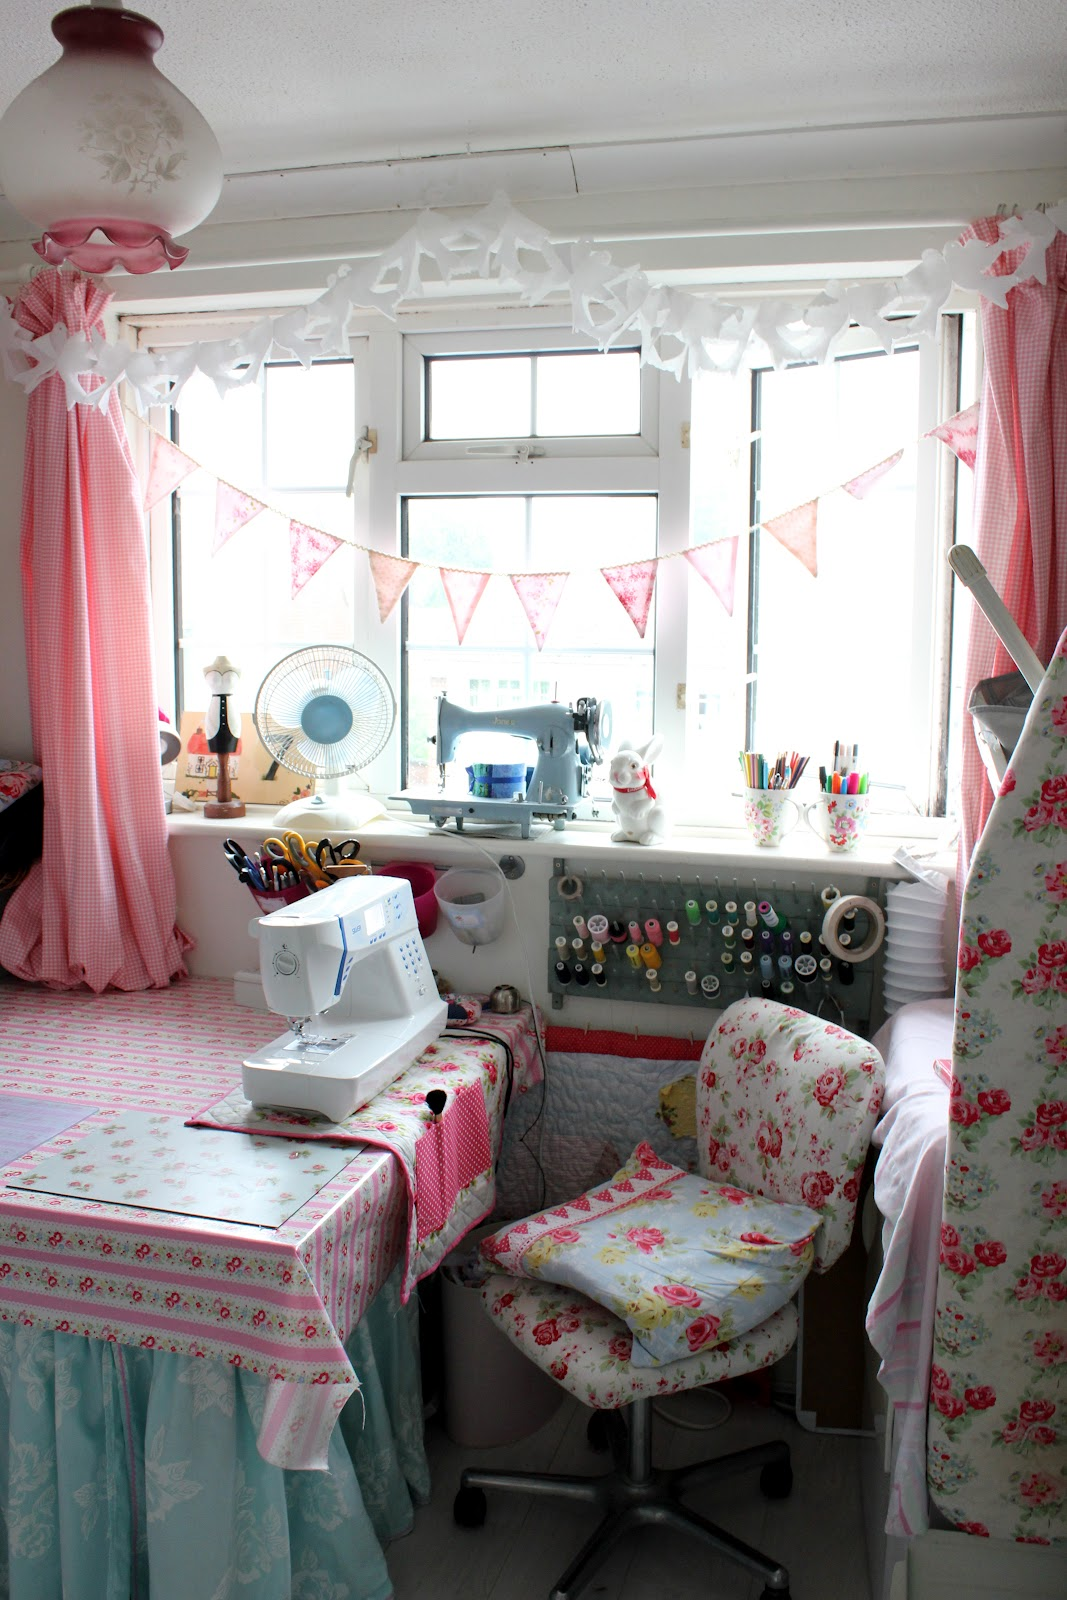 Shabbychicsarah sewing room tour - Craft room ideas for small spaces concept ...